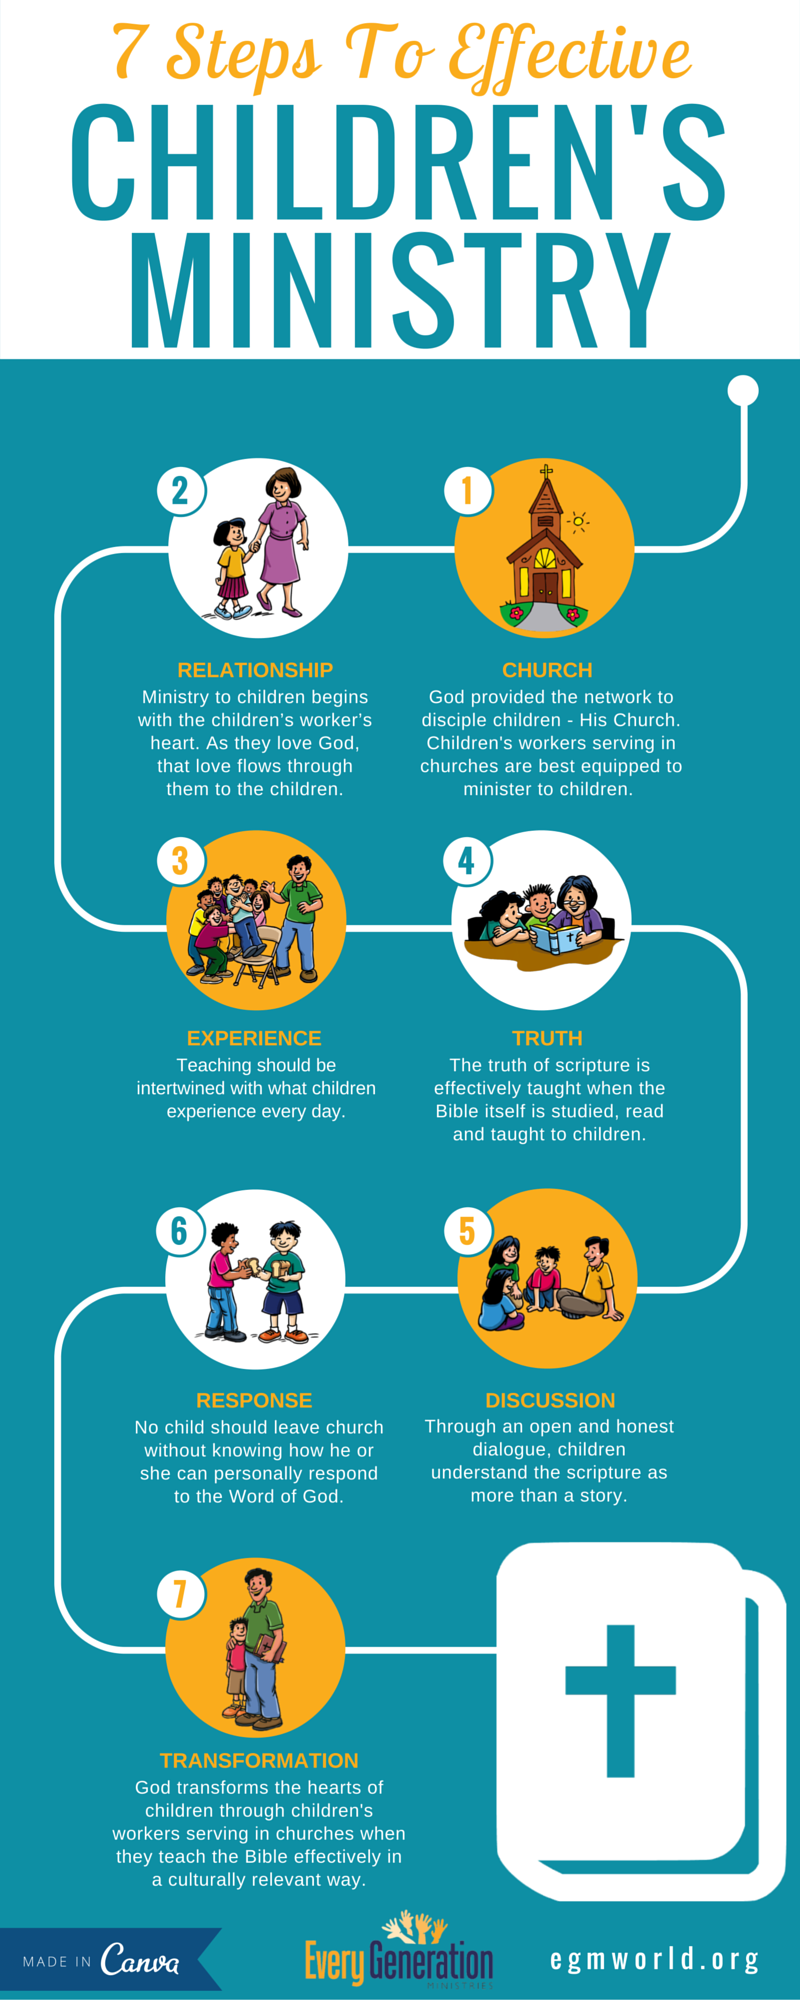 7 Steps to Effective Children's Ministry - EGM Infographic